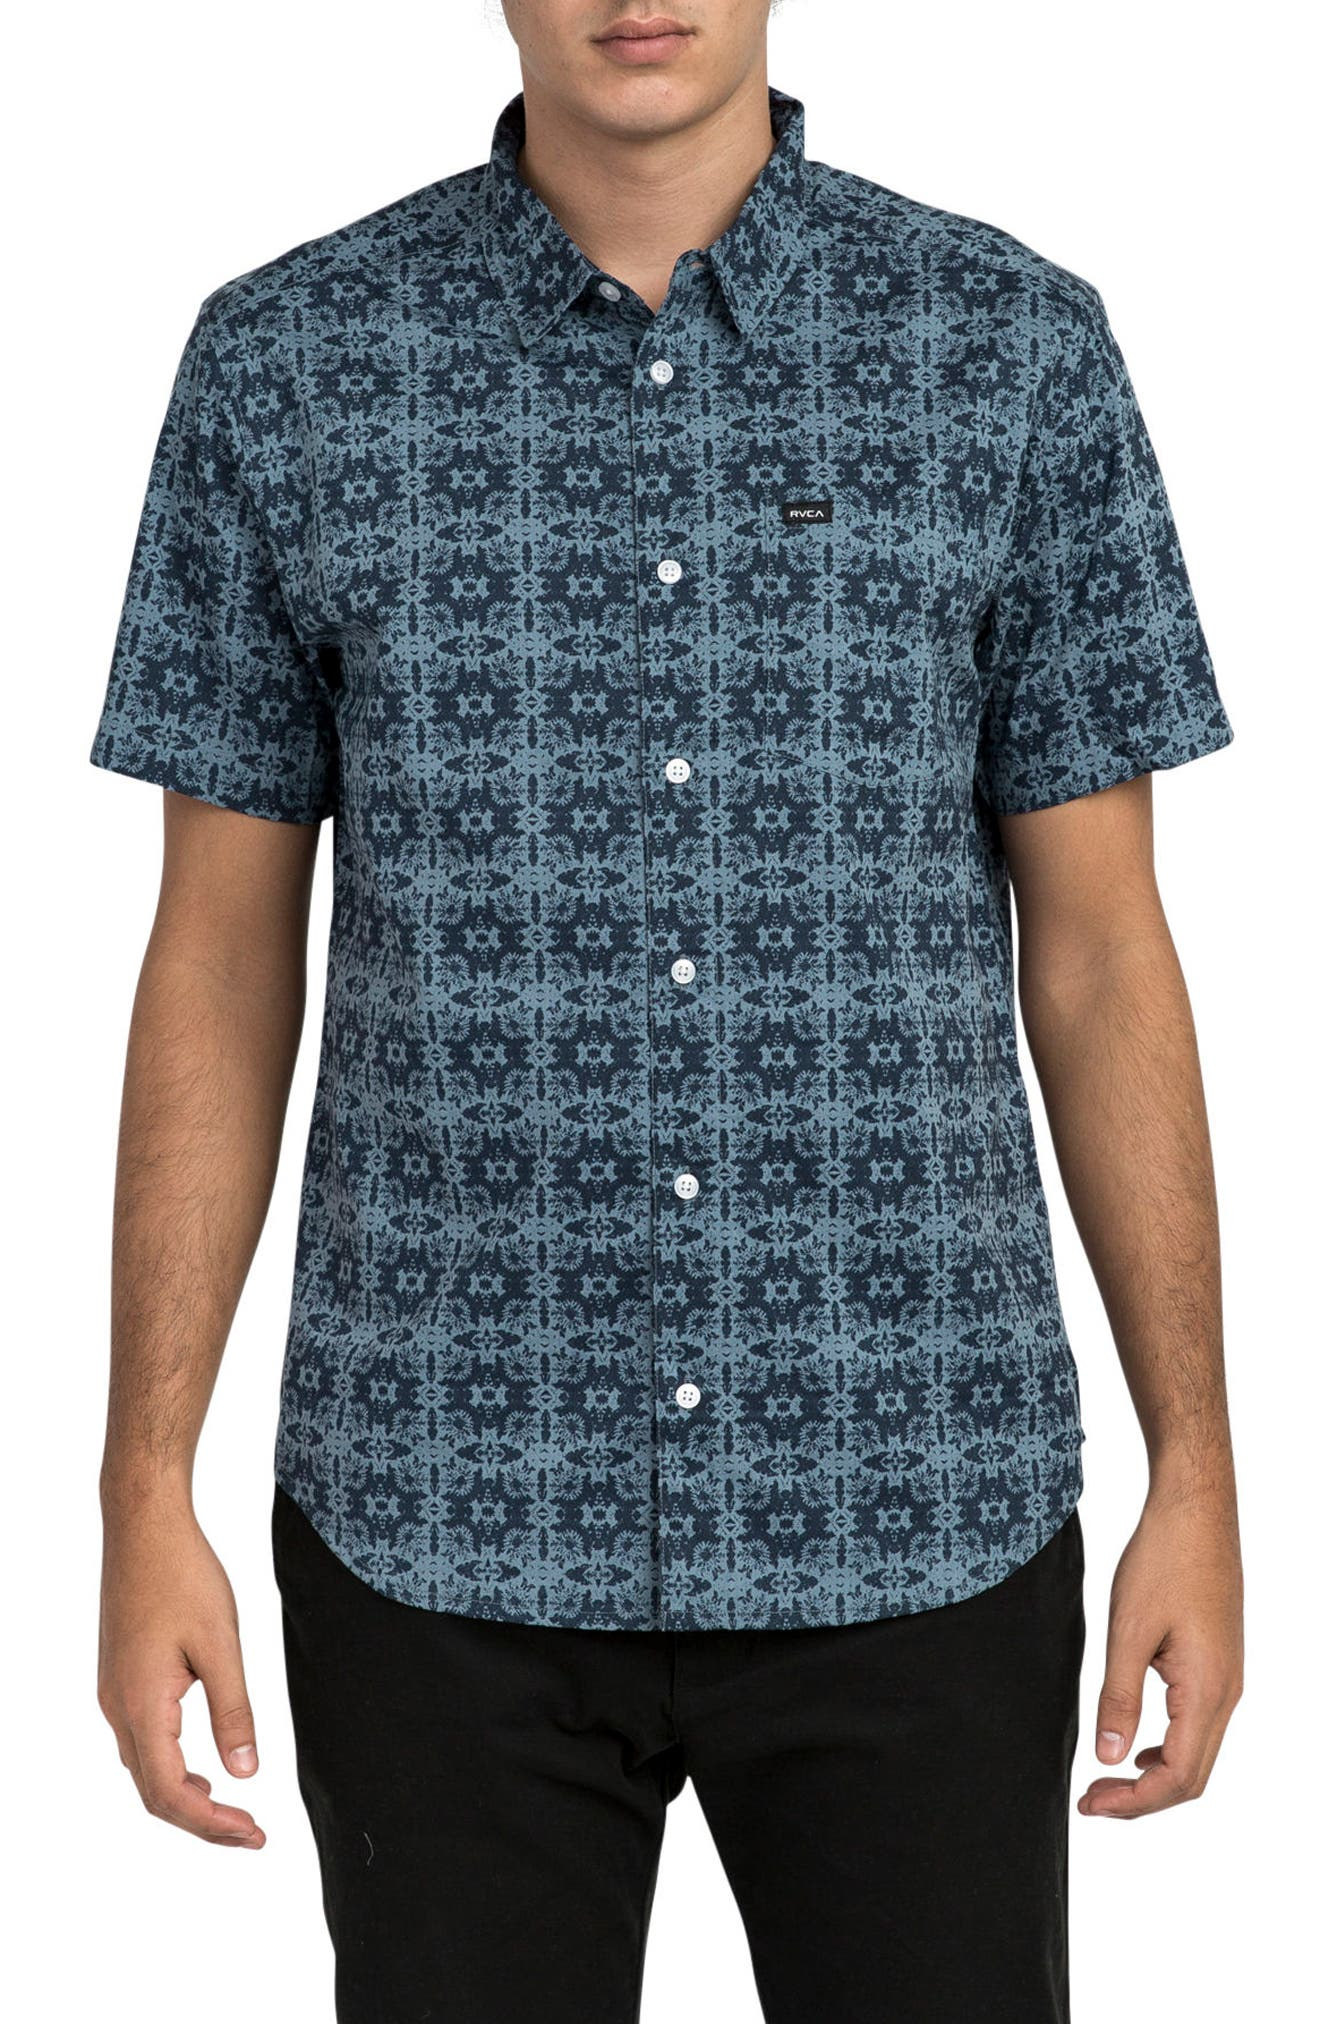 Visions Short Sleeve Shirt,                             Main thumbnail 1, color,                             407